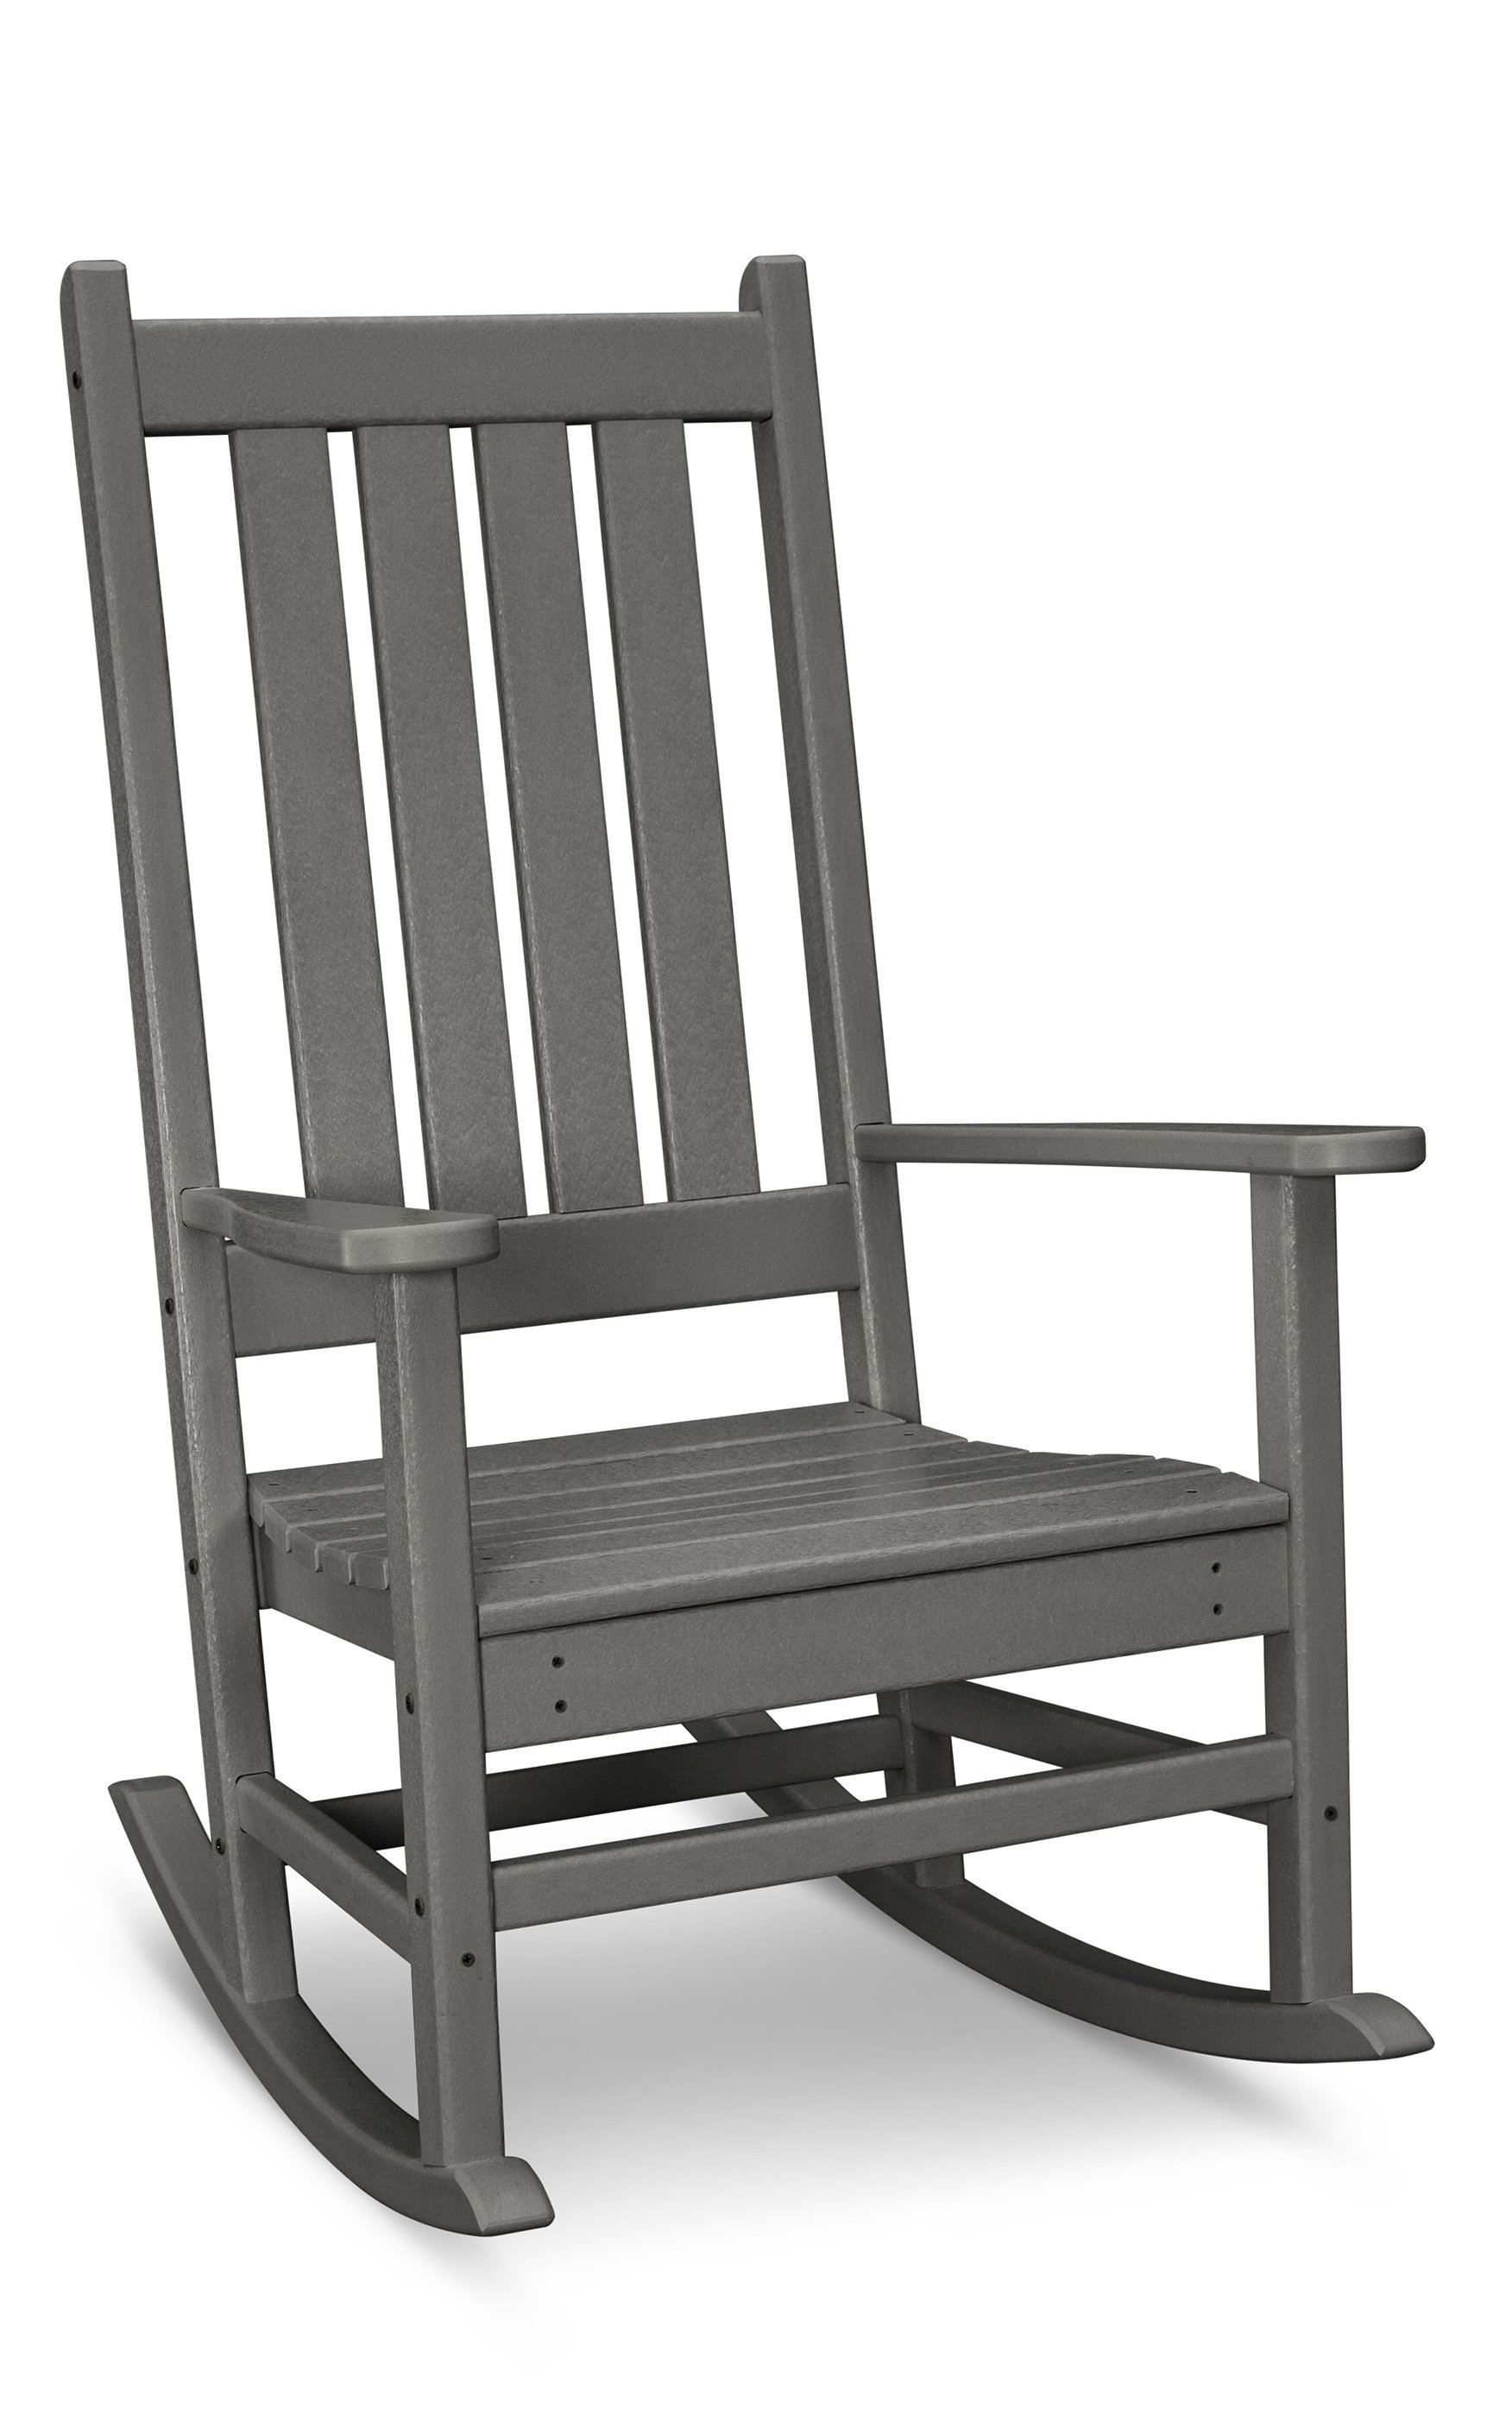 Polywood® Vineyard Porch Rocking Chair (View 15 of 15)